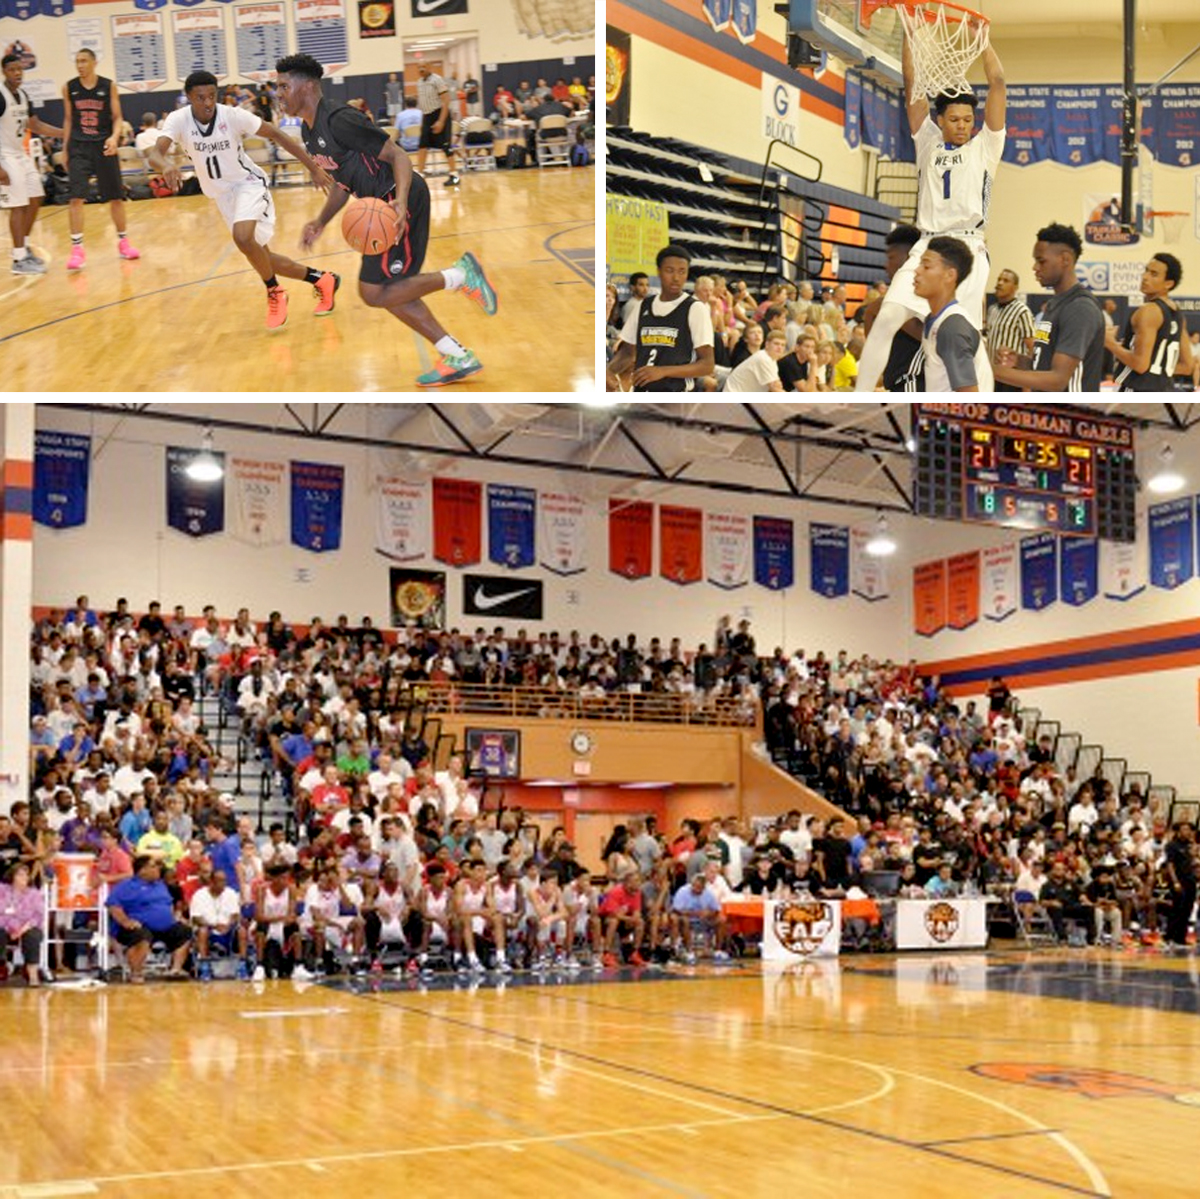 Top Ten Fab Pictures: Fab 48 Recap: Results And Top Plays From One Of The Nation